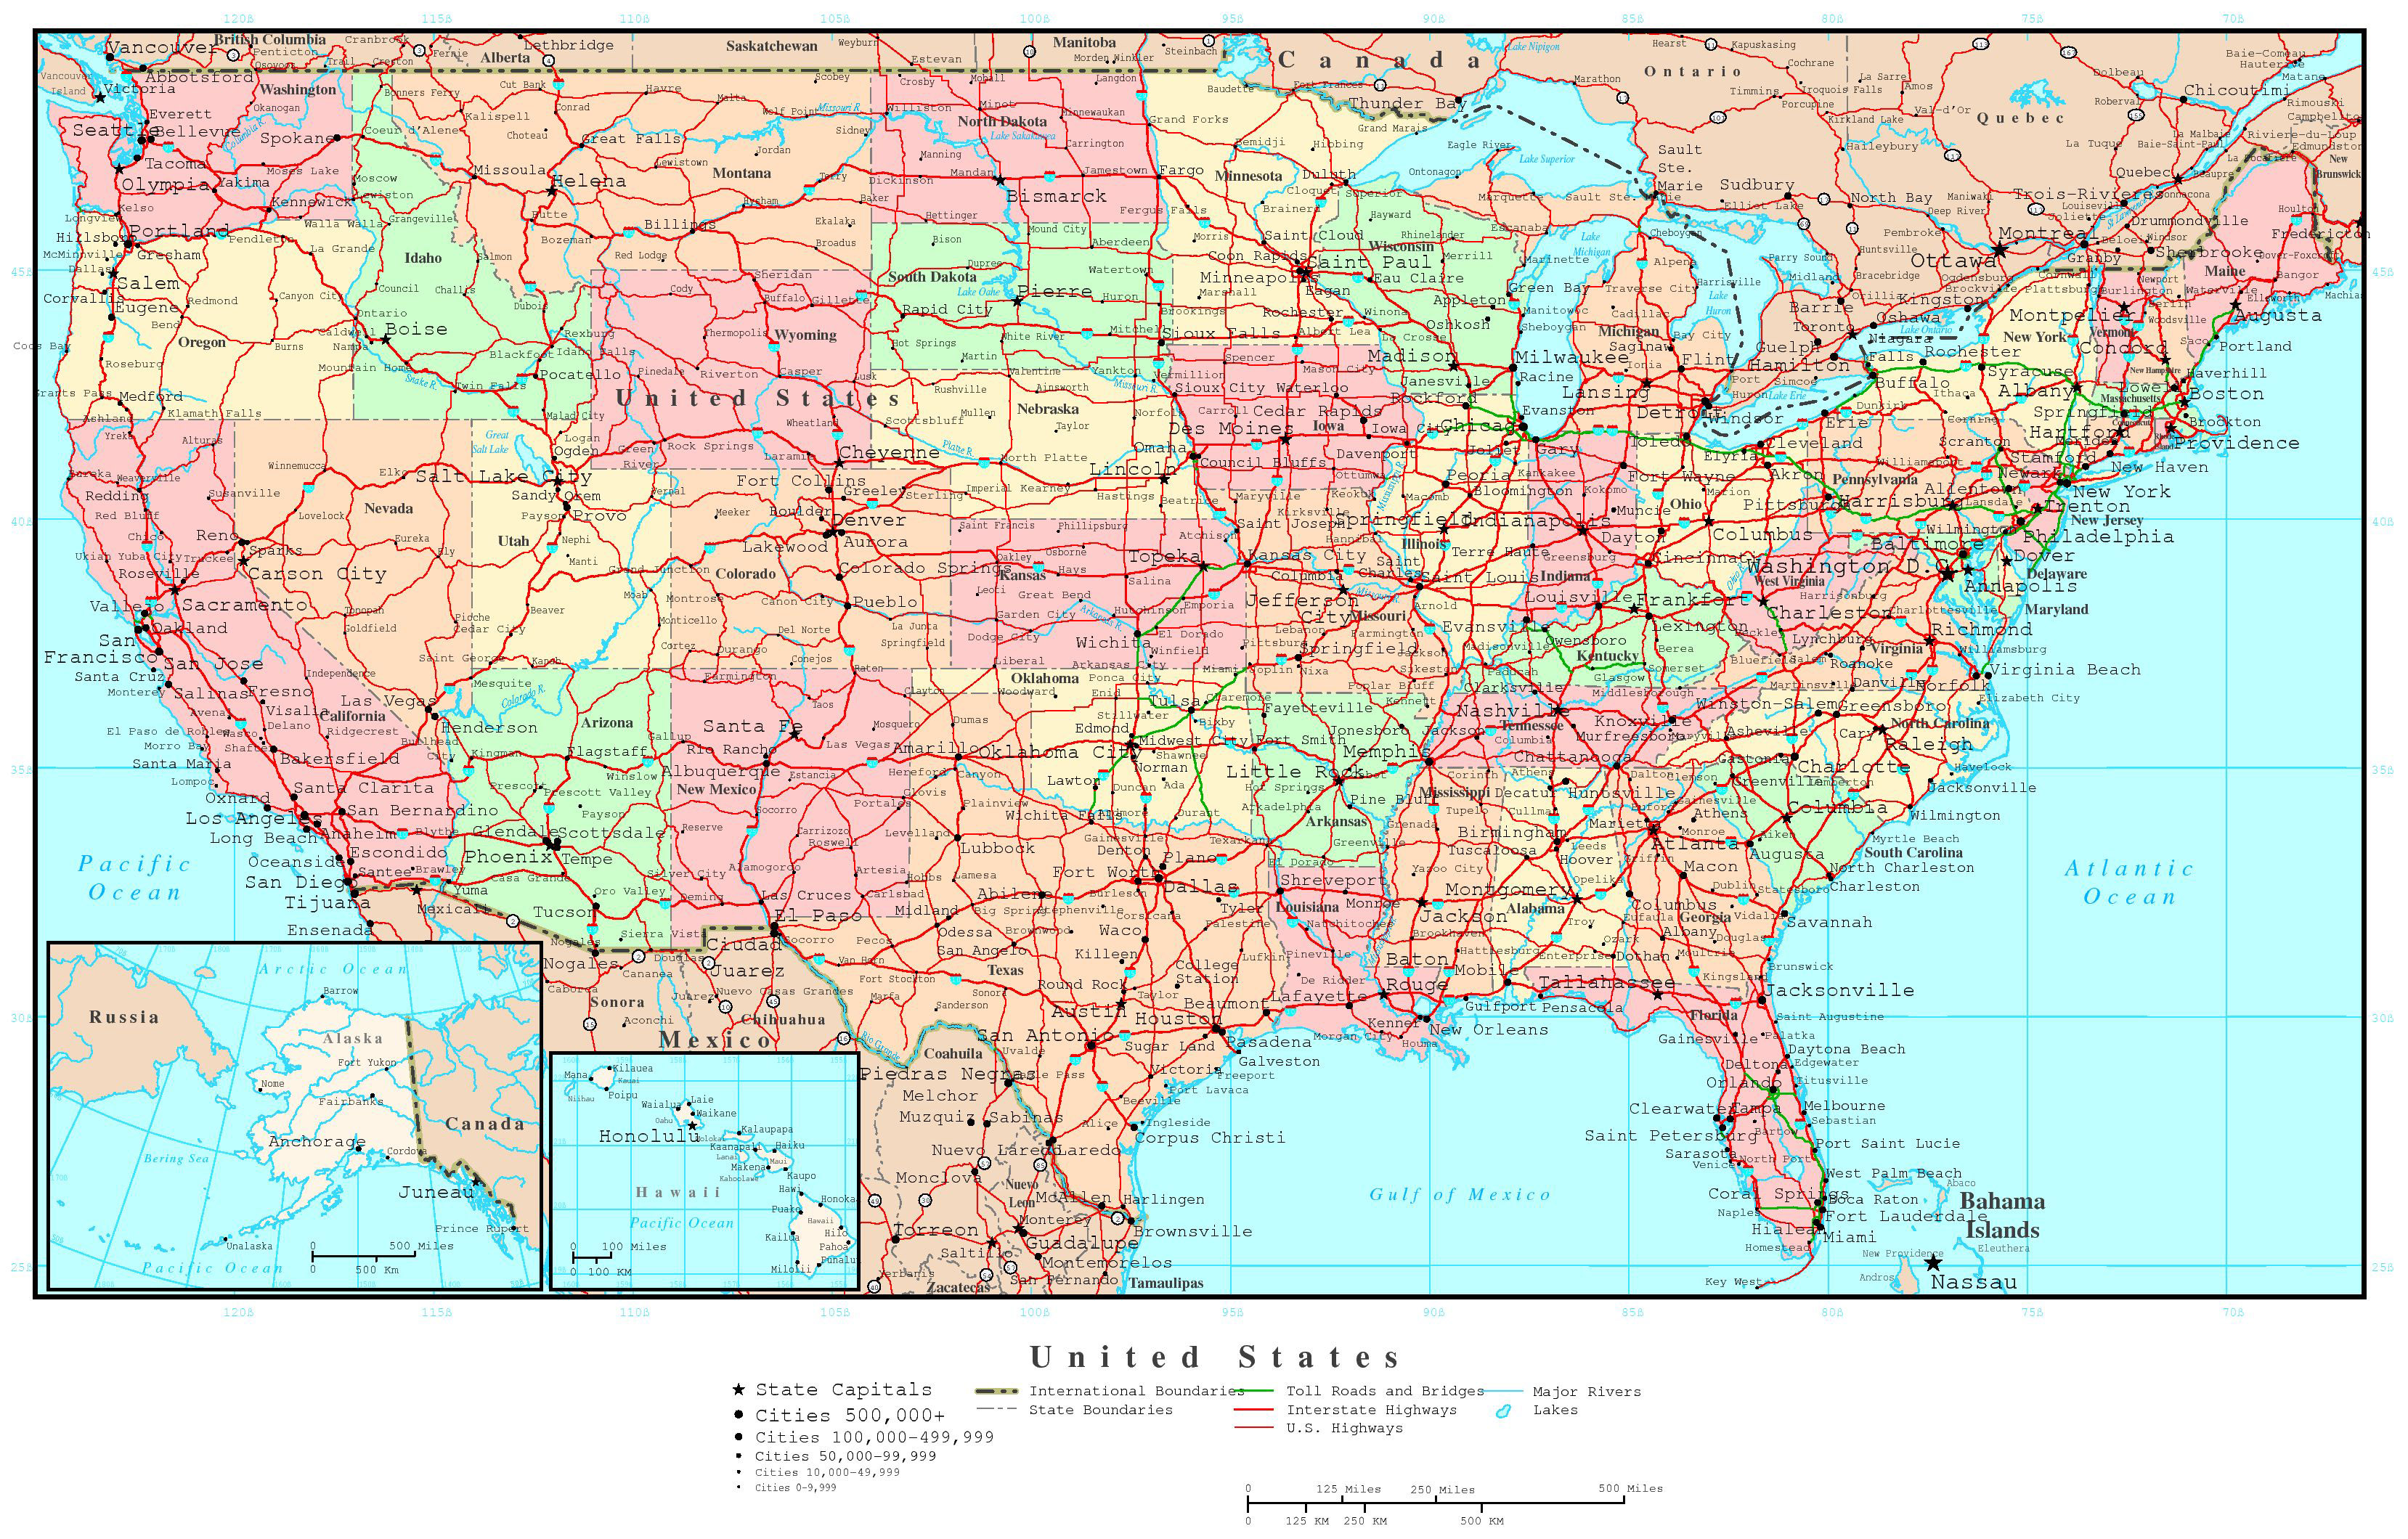 Road trip united states clipart png freeuse download Us road map clipart - ClipartFest png freeuse download